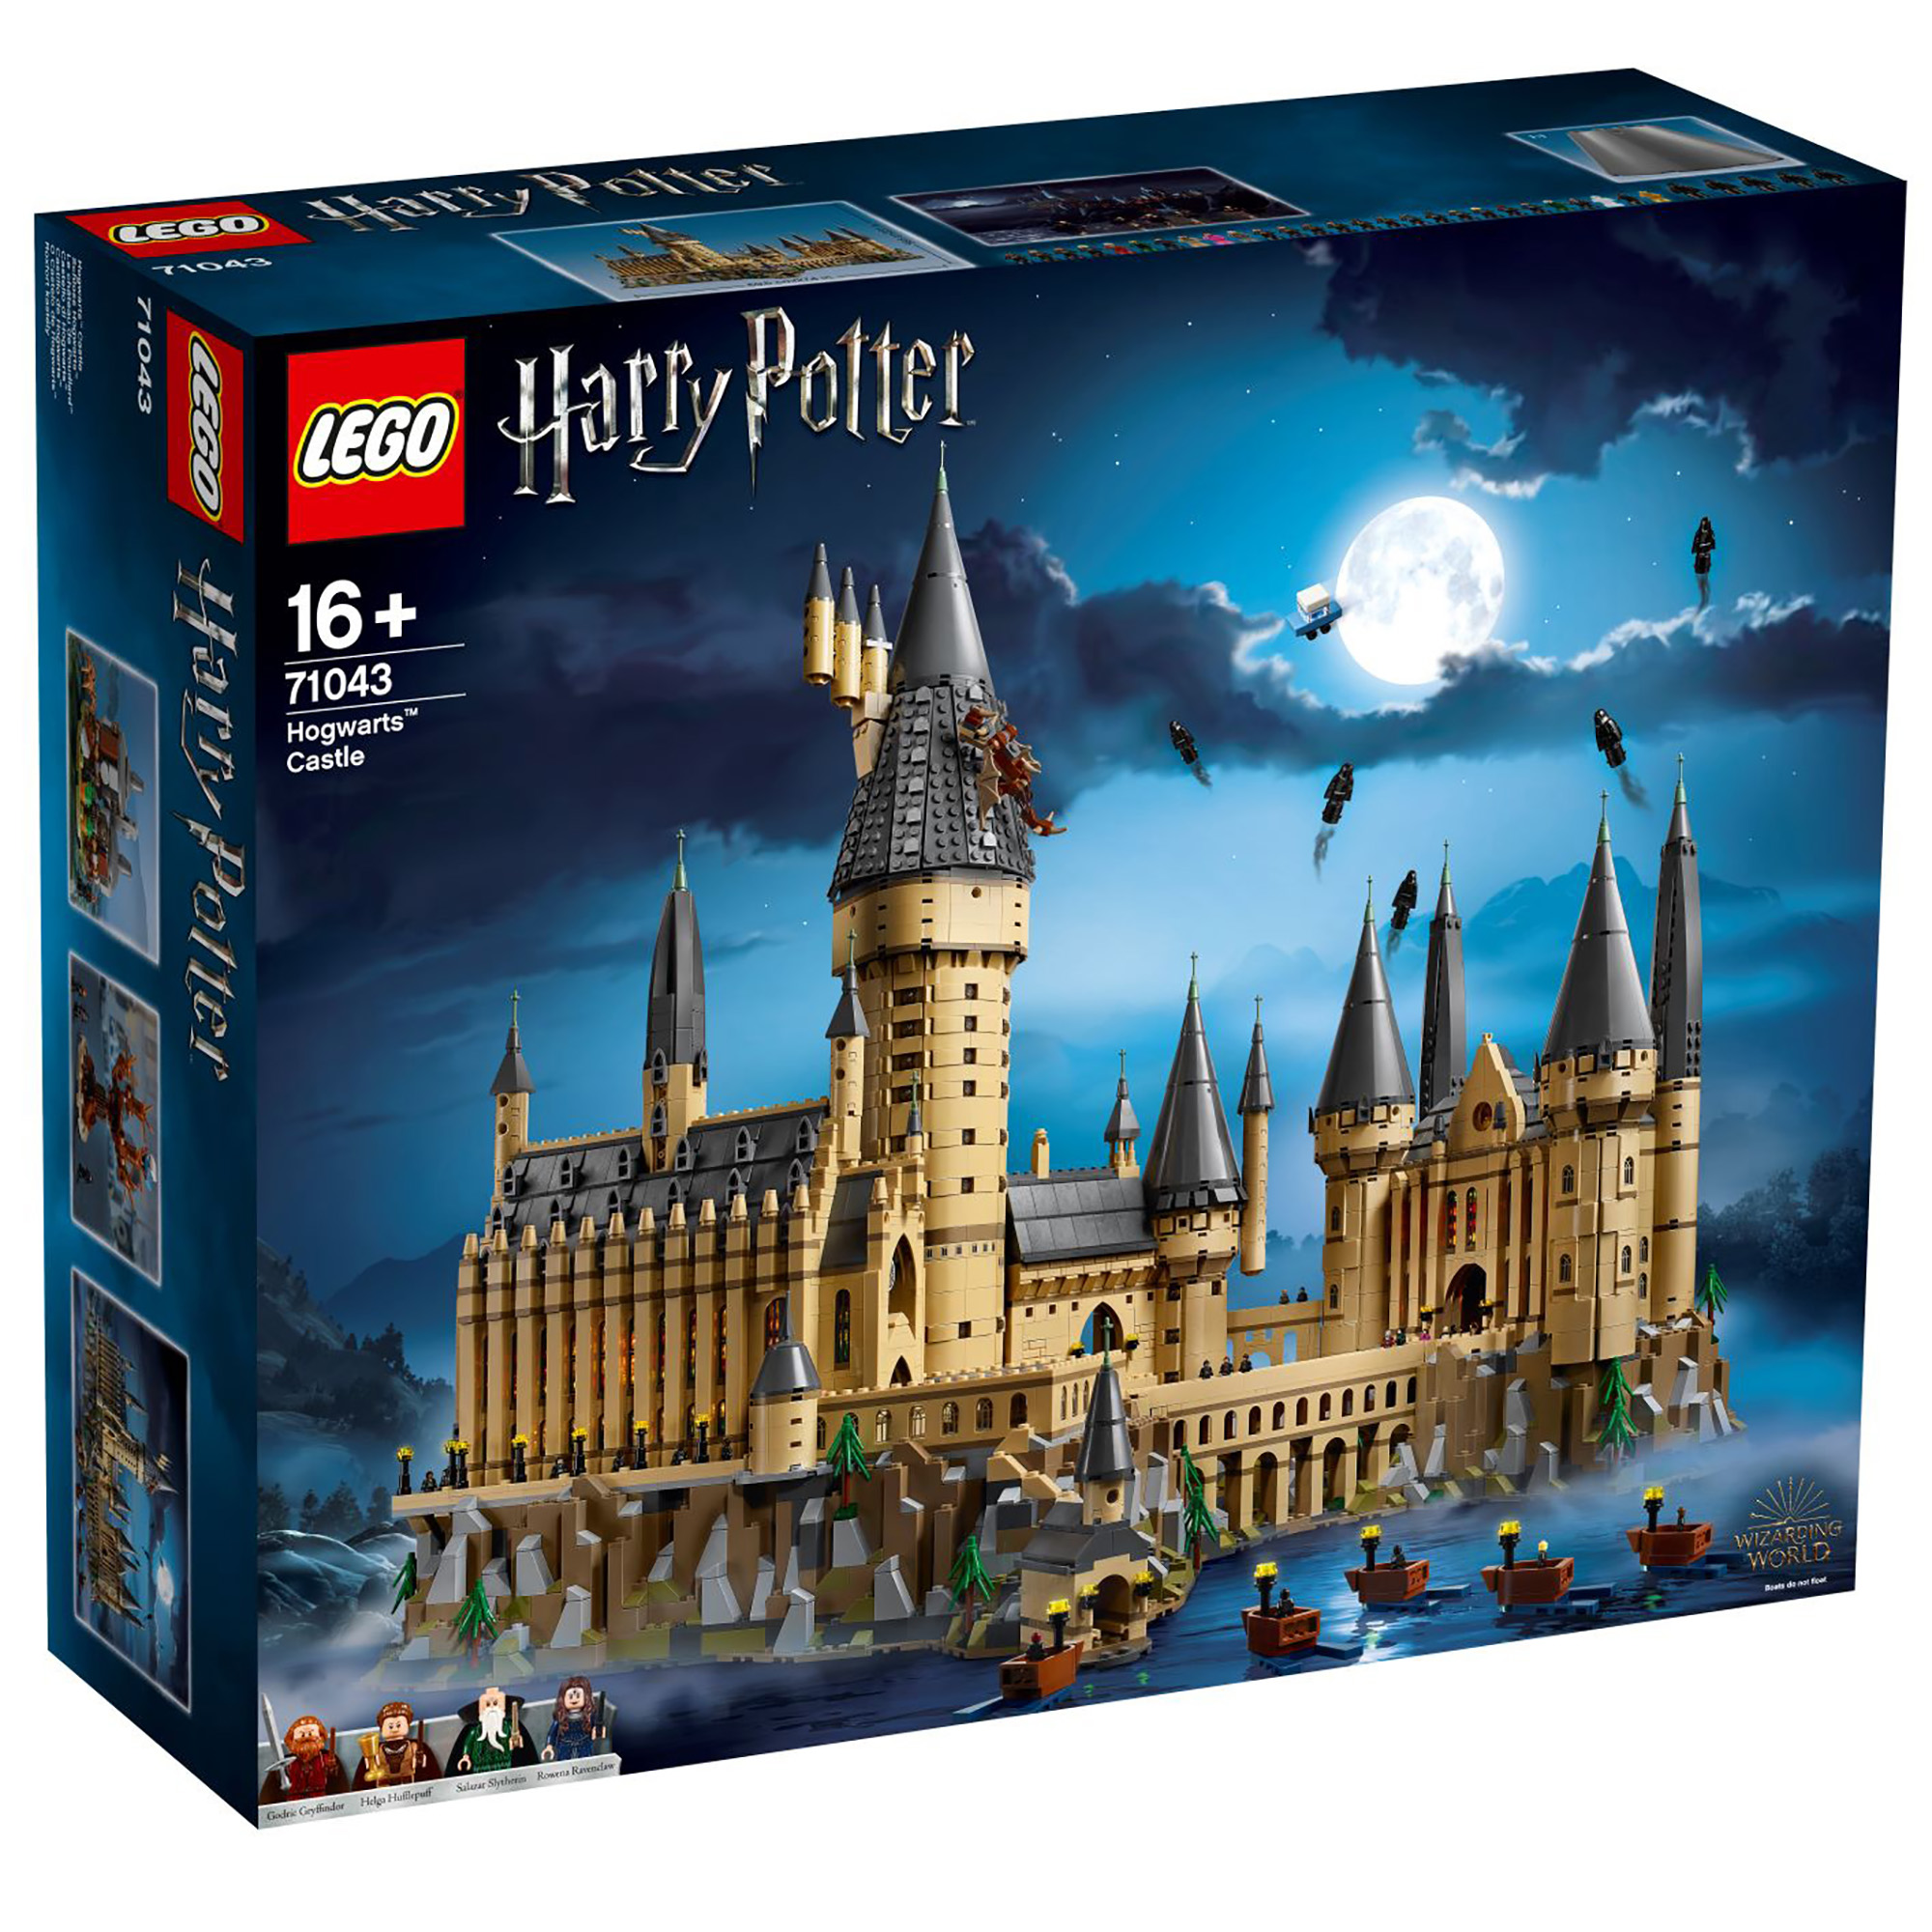 Micro House Lego Brings The Magic With Hogwarts Castle Set 71043